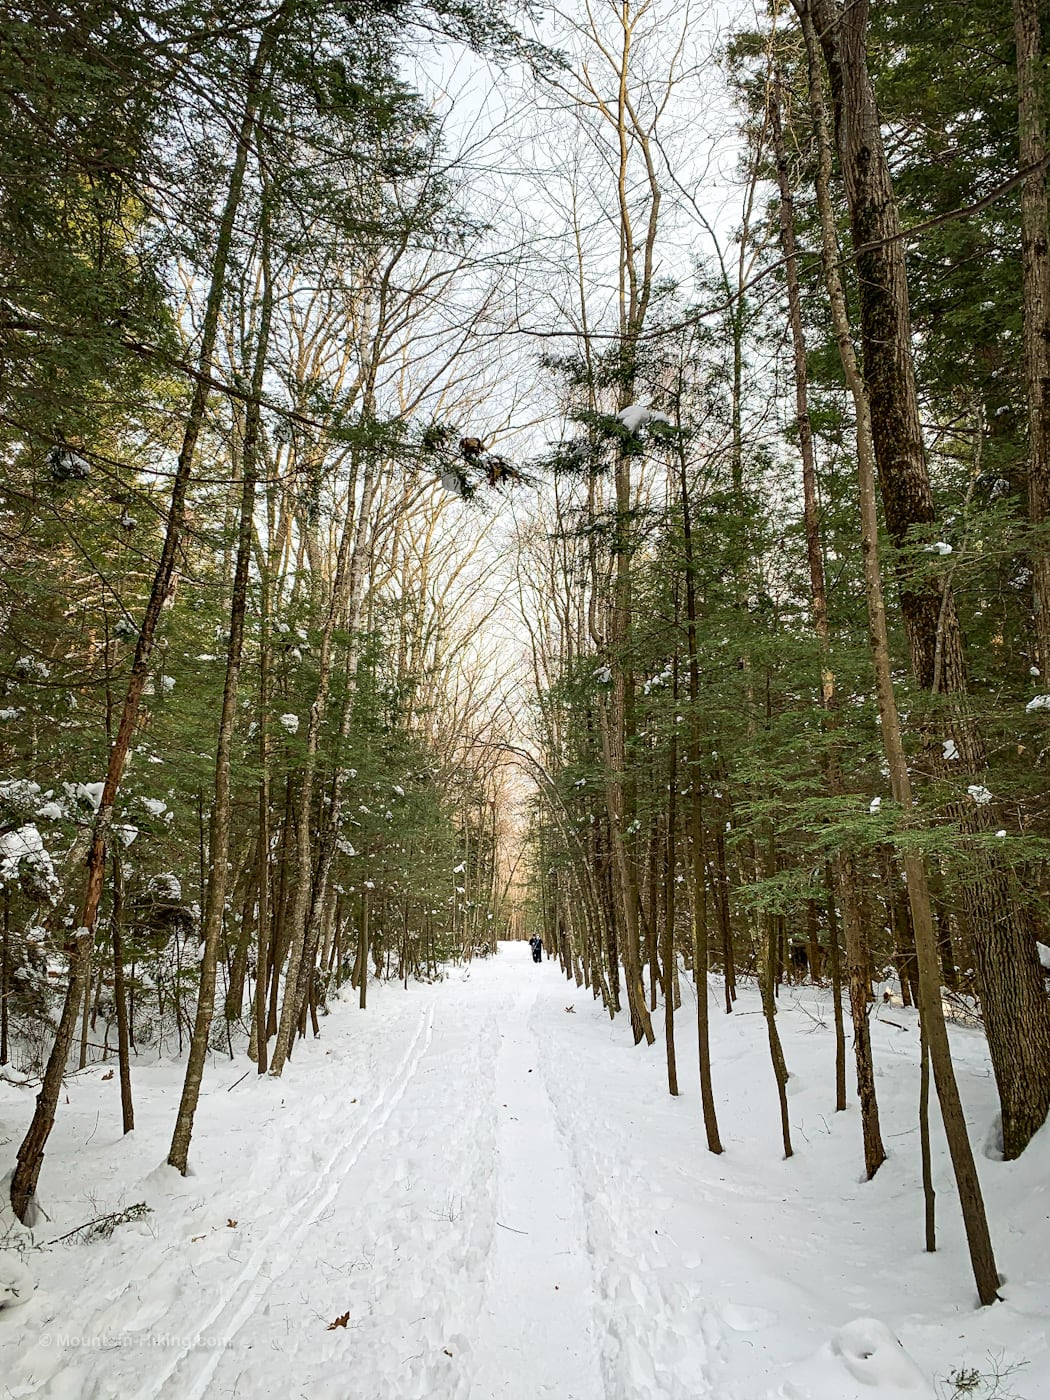 snowy trail in winter woods Kaaterskill Rail Trail